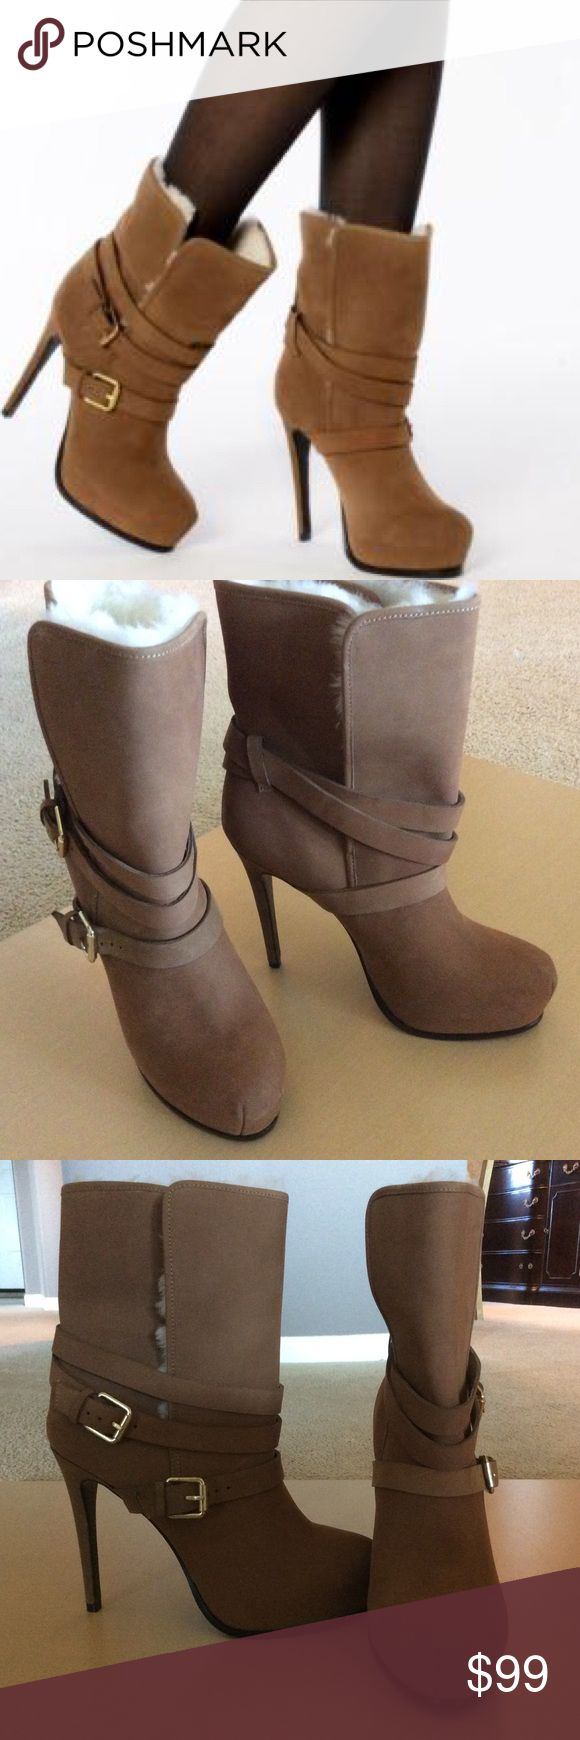 "NWOT Tan Suede Lizzie Platform Ankle Boot NWOT Tan suede Lizzie platform ankle boot. Excellent condition. 5""Heel. No box but will be wrapped and shipped with care. Pour la Victoire Shoes Ankle Boots & Booties"